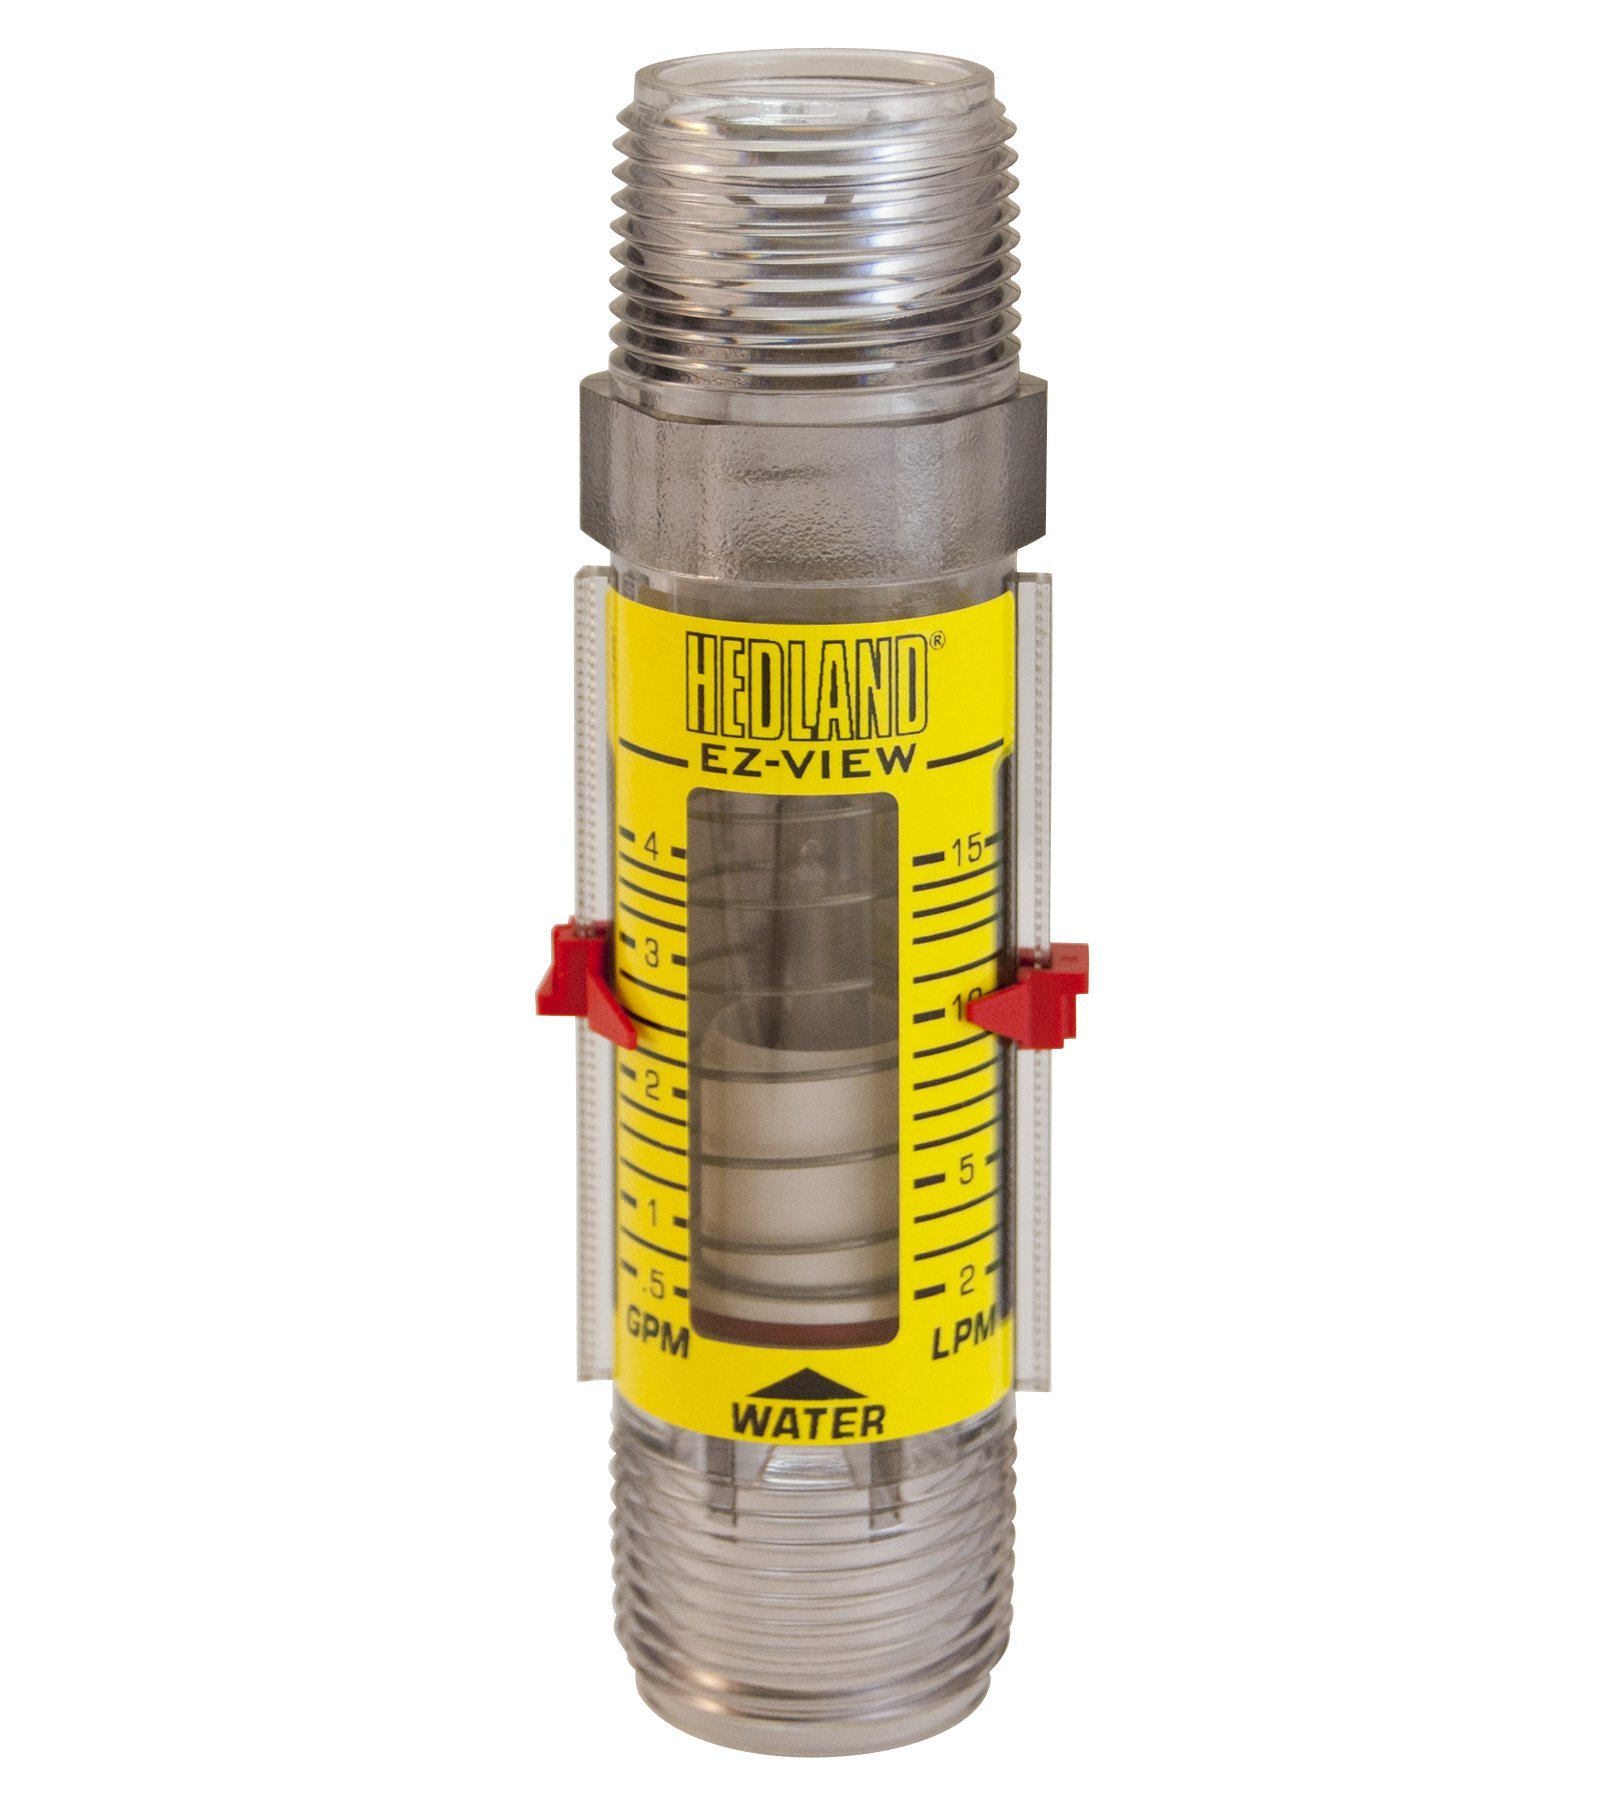 Hedland H621-004 EZ-View Flowmeter, Polysulfone, For Use With Water, 0.5-4 gpm Flow Range, 1'' NPT Male